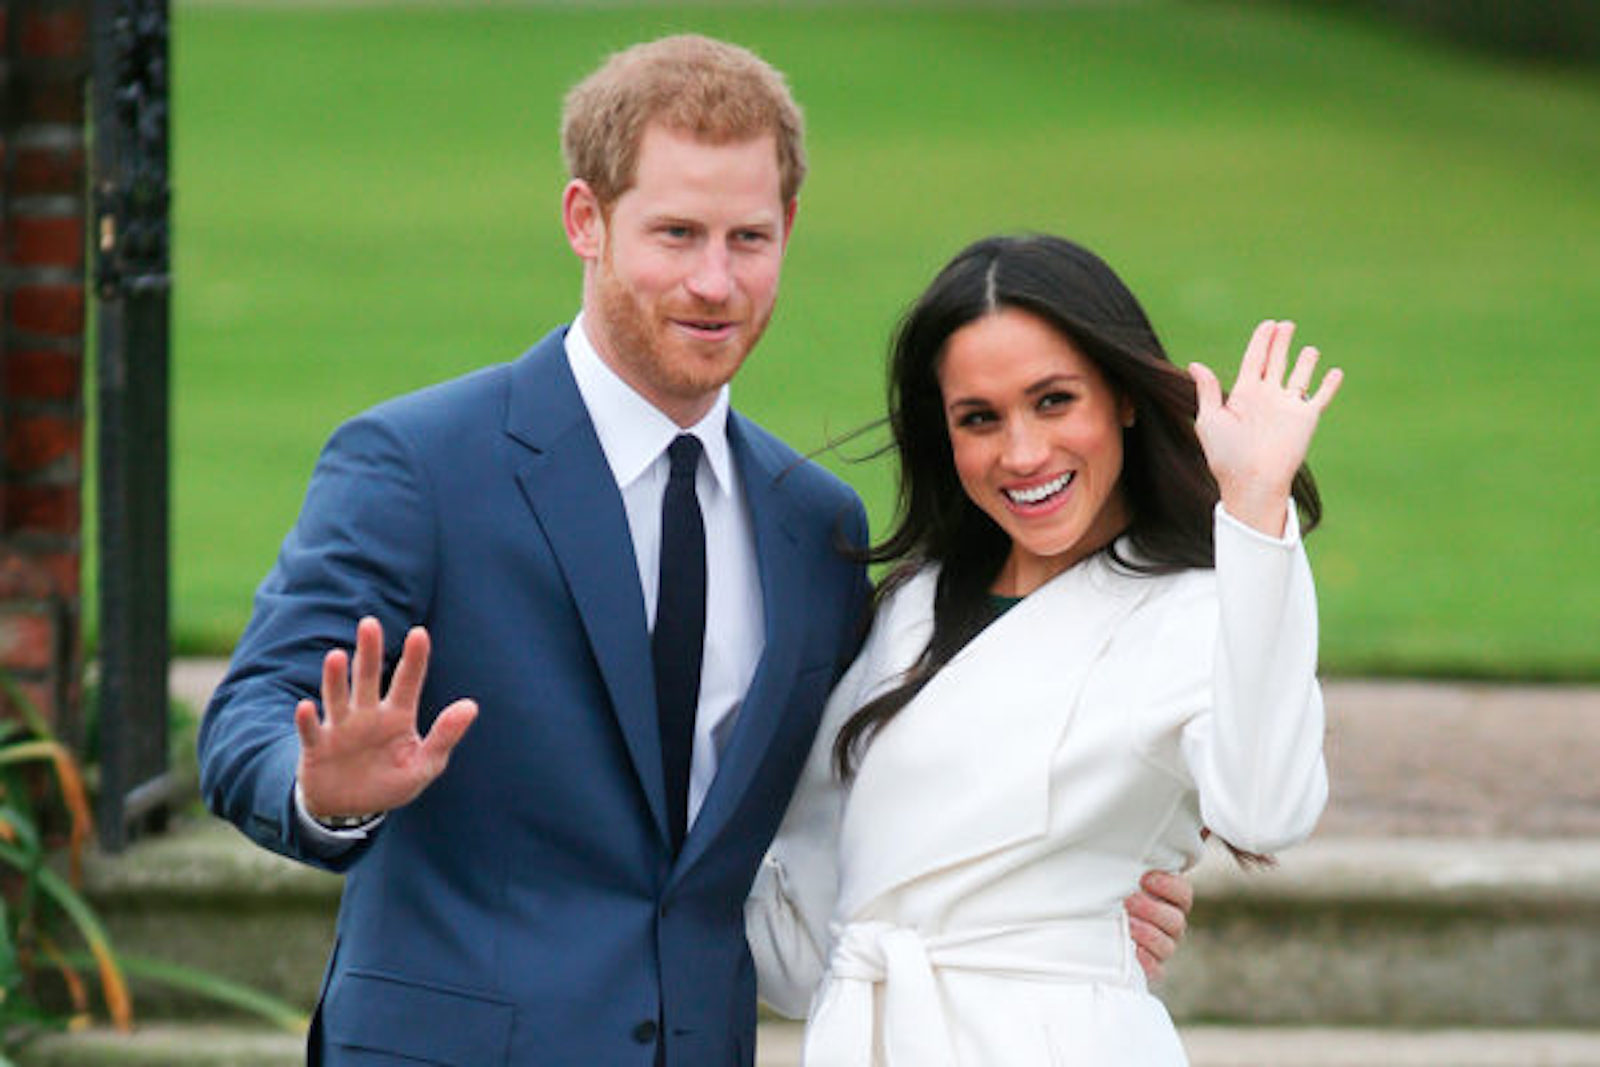 An Ironic Anniversary for a Royal Wedding